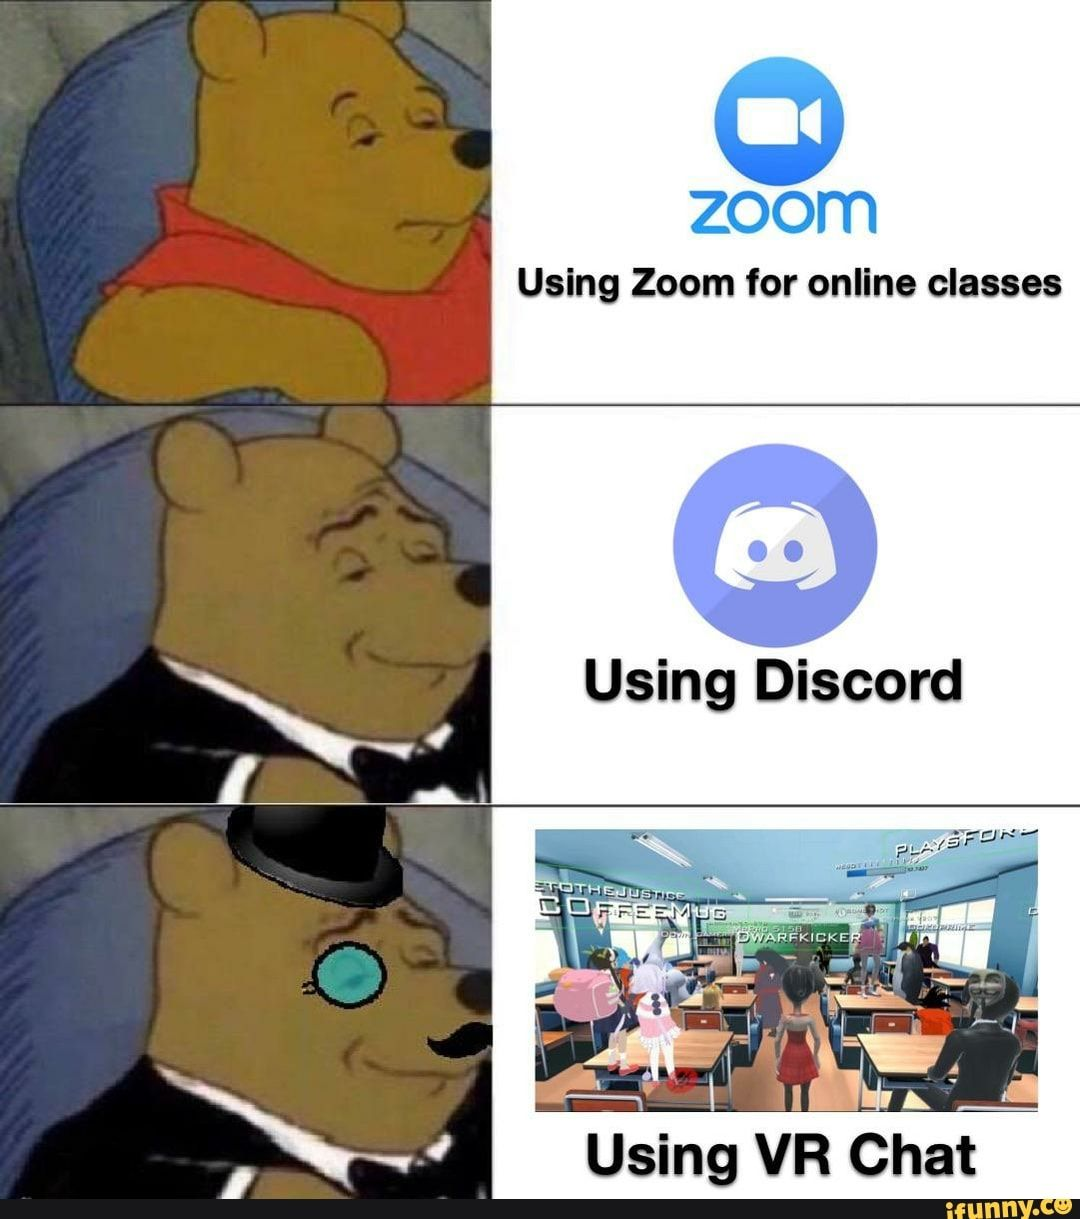 Zoom Using Zoom For Online Classes Using Vr Chat Ifunny Really Funny Memes Funny Relatable Memes Stupid Memes